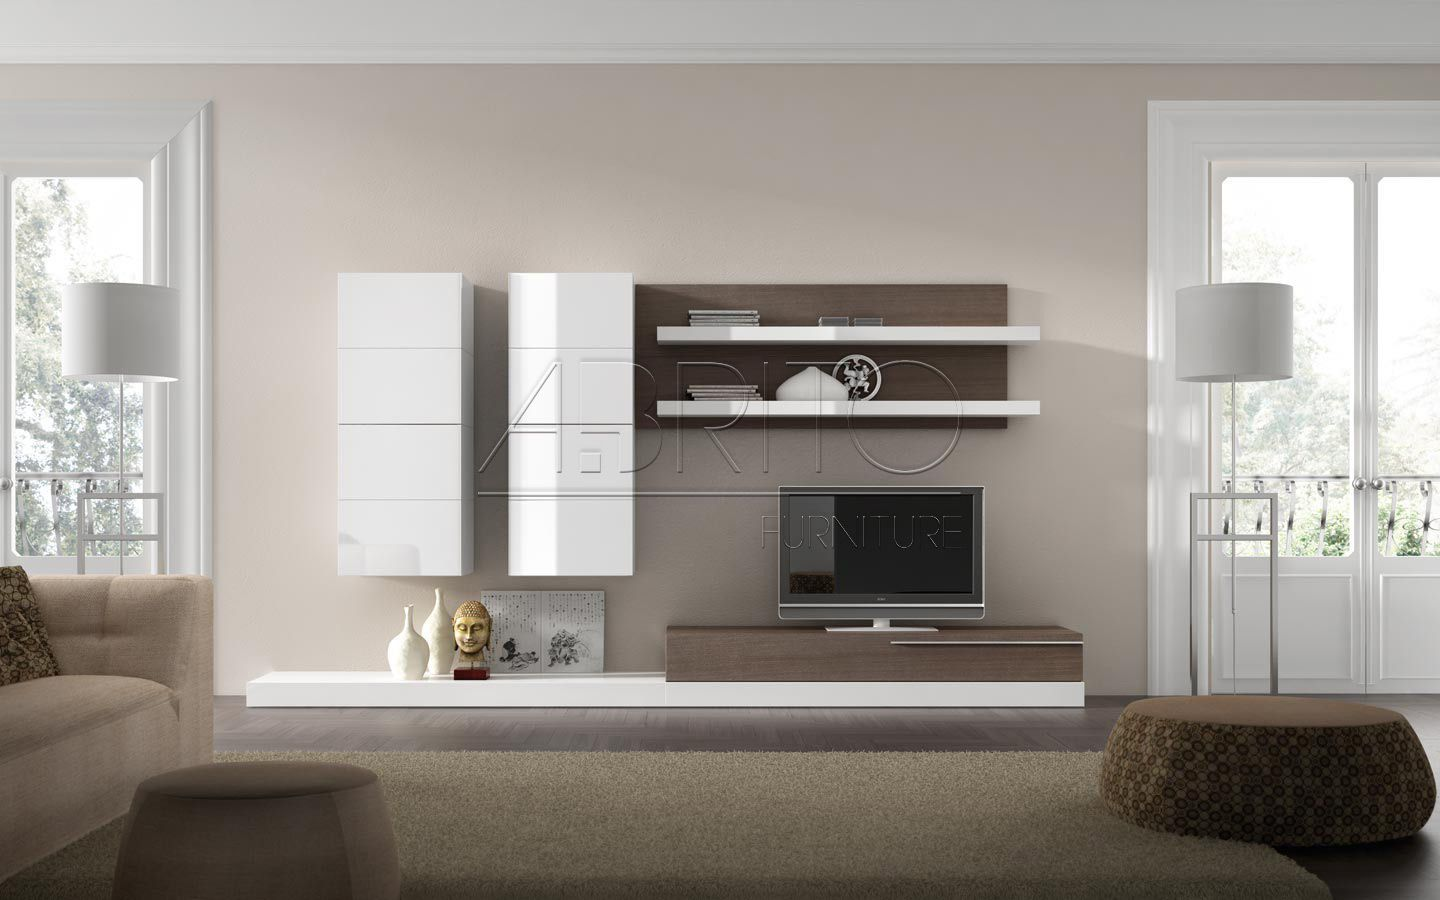 Designers small wall units c utare google polite de Wall units for living room design